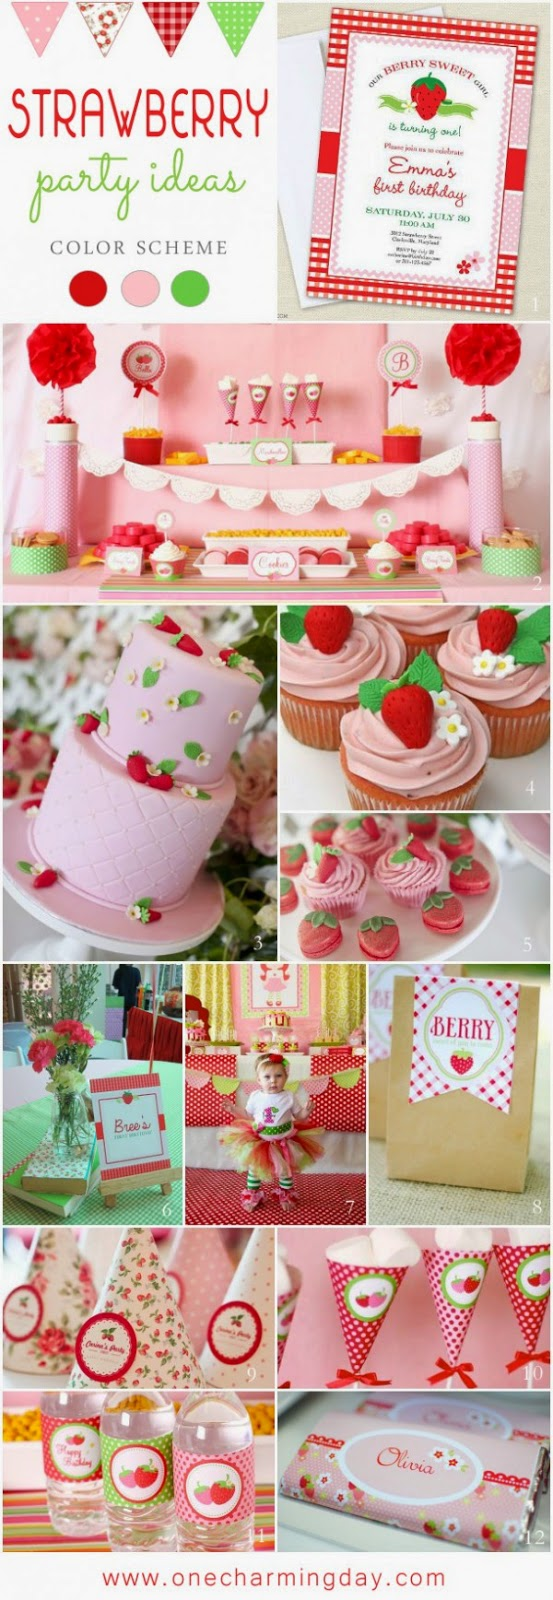 1st birthday picture ideas girl ; Strawberry-Party-Ideas-600x1736